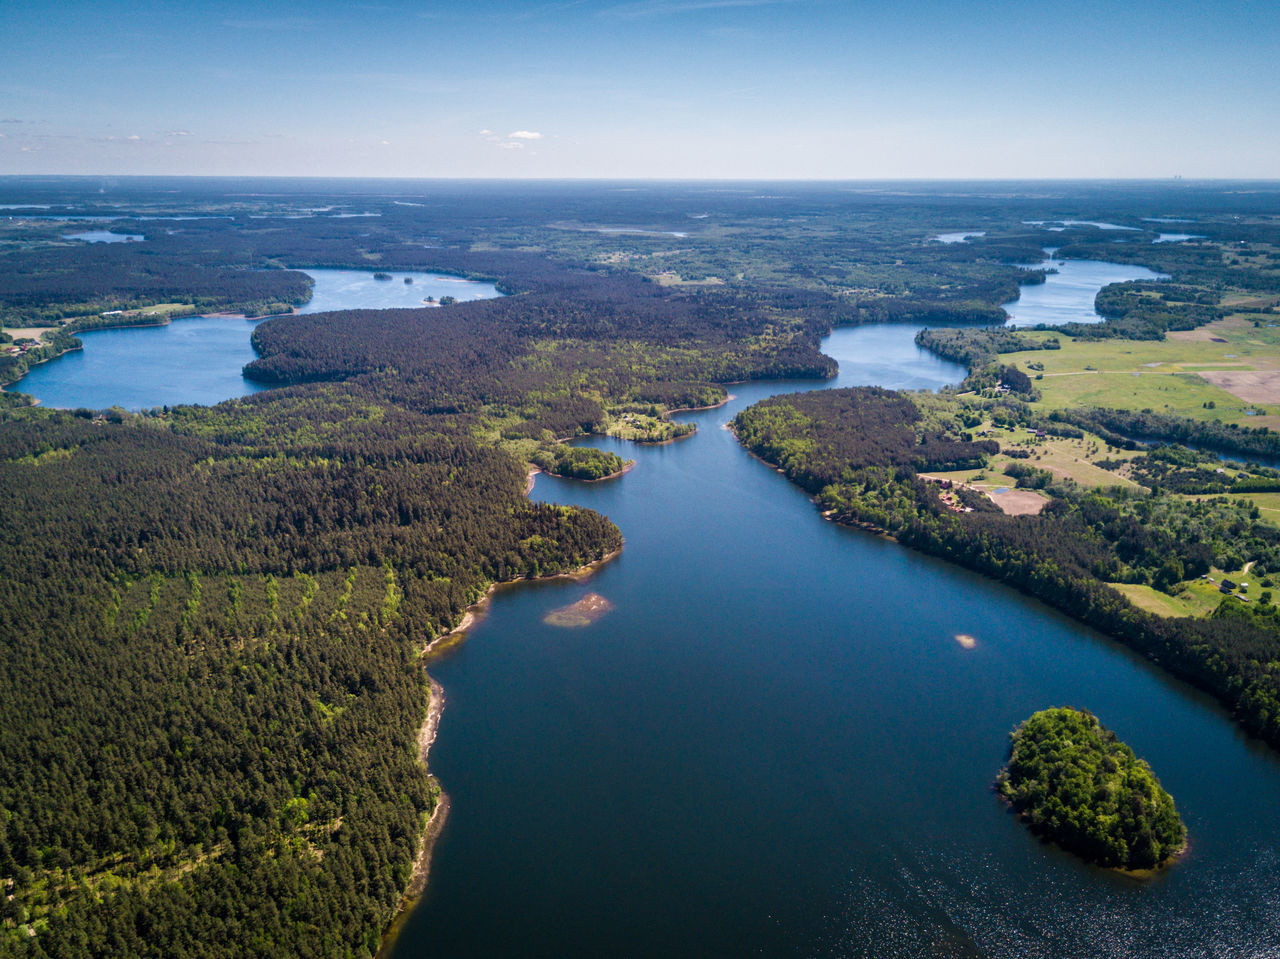 Long blue lake in forest. Asveja Beauty Beauty In Nature Blue Water Dji DJI Mavic Pro Drone  Dubingiai Eastern Europe Europe Horizon Over Water Lake Landscape Life Lithuania Lithuania Nature Mavic Pro Narrow Lake Nature Outdoors Panorama River Scenics Water Wild